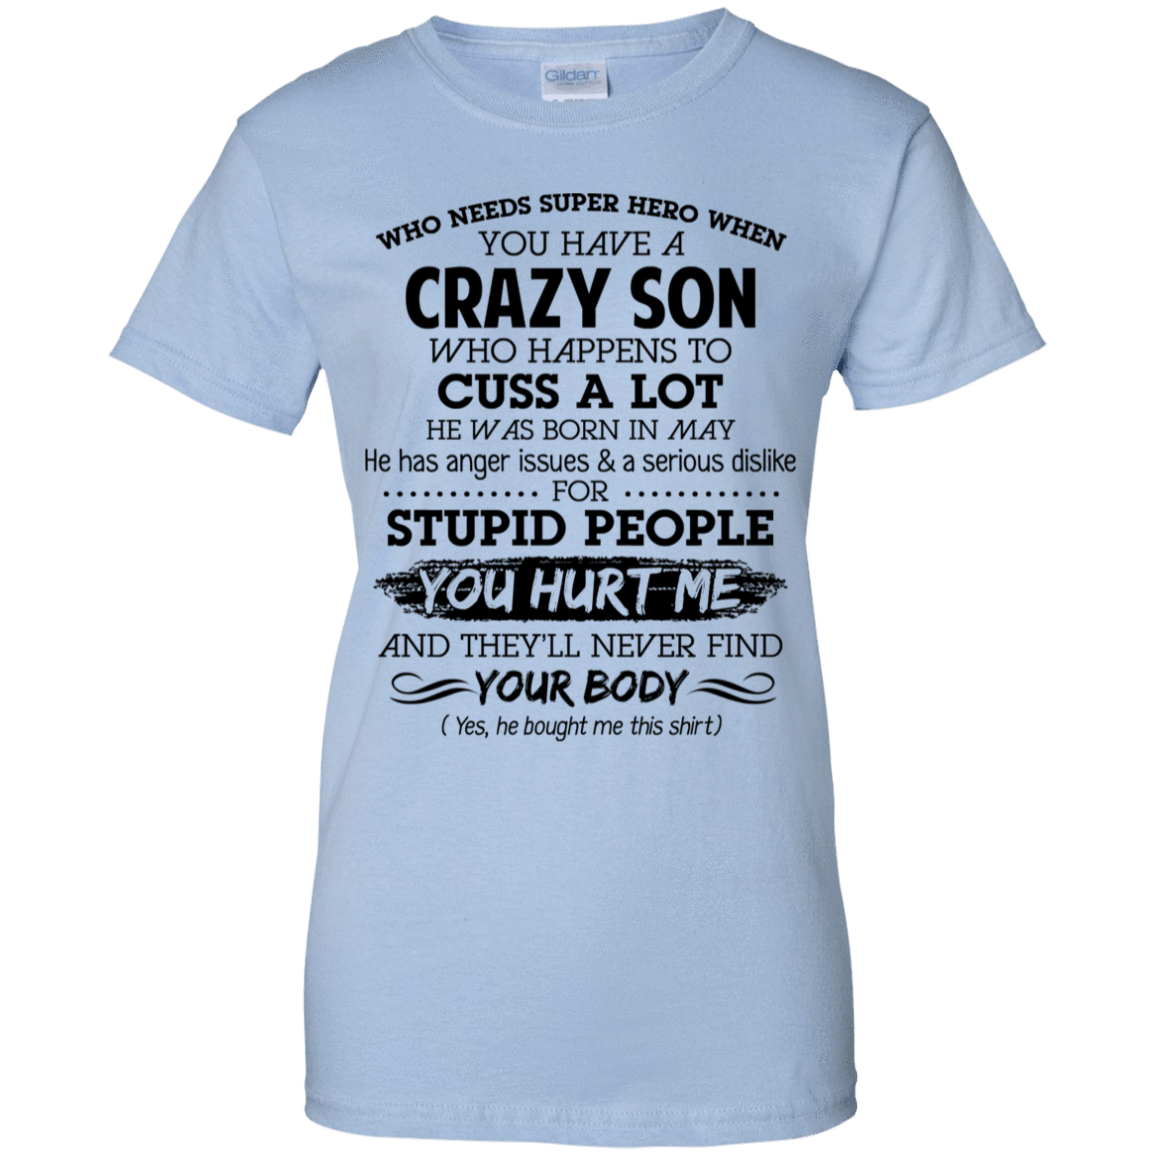 I Have A Crazy Son He Was Born In May Mother's Day Gift 939-9257-73303413-44716 - Tee Ript